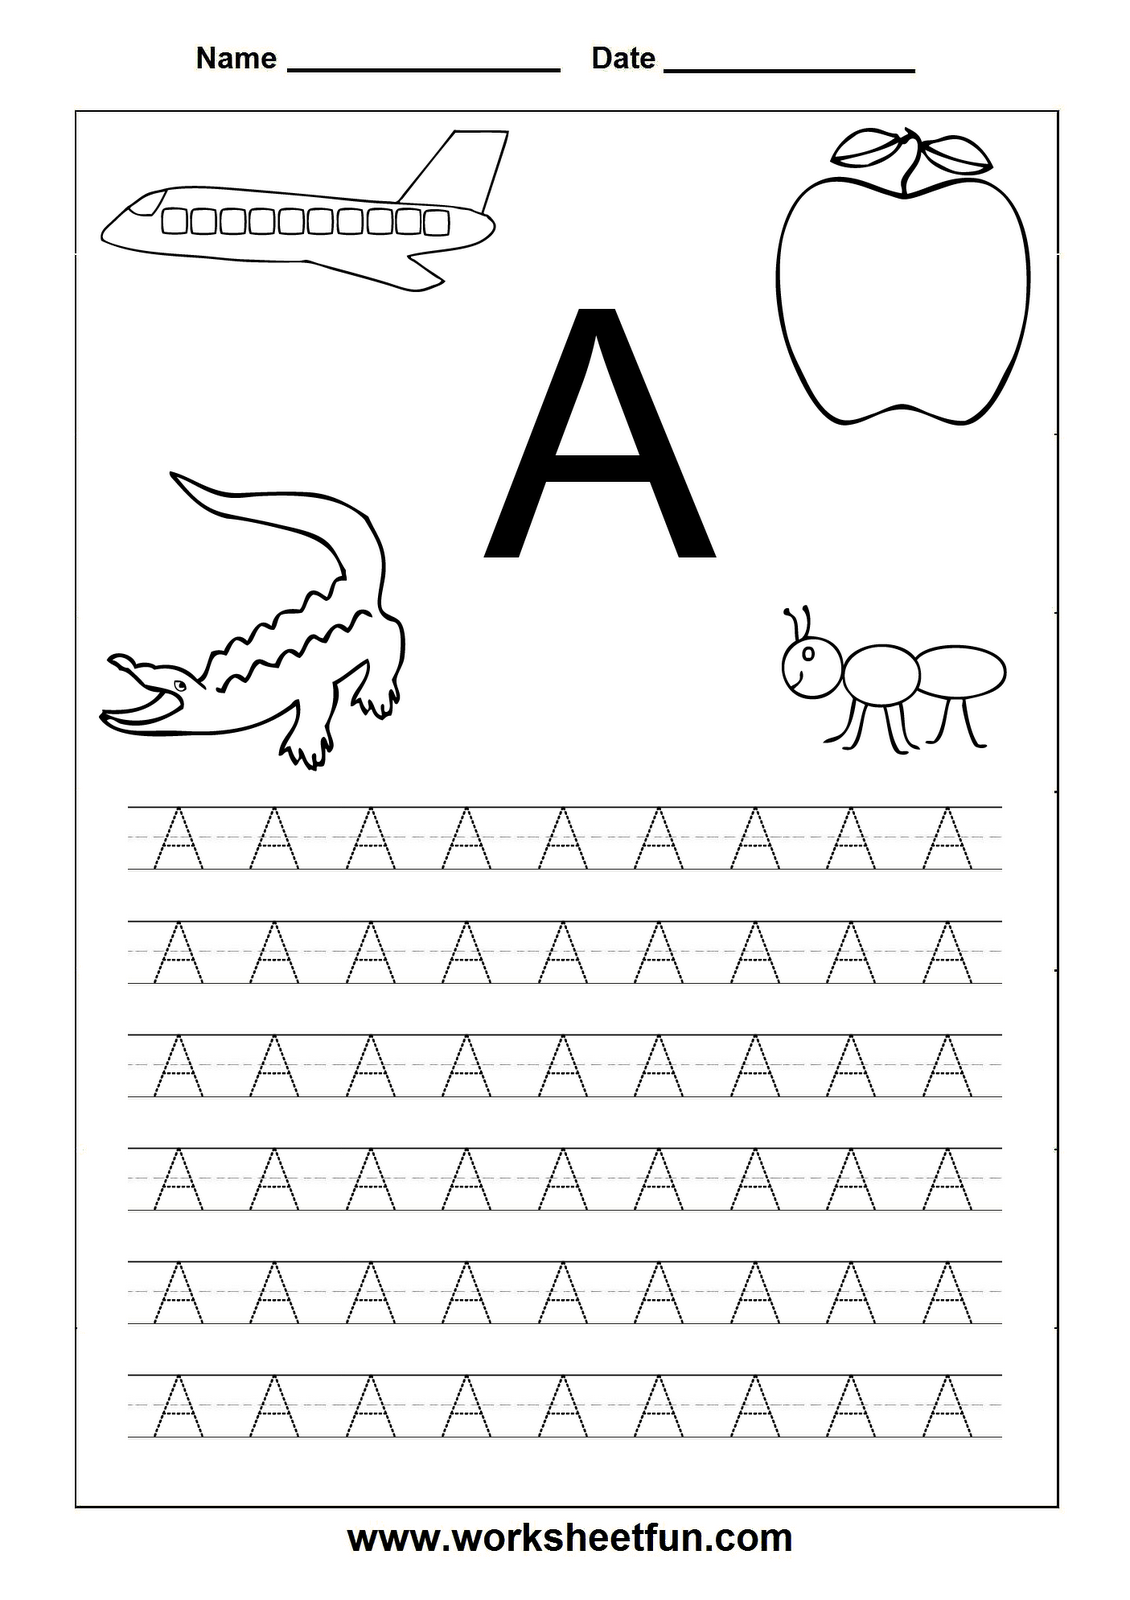 Worksheets Alphabet Worksheets For Preschoolers letter worksheets for kindergarten printable letters pinterest printable